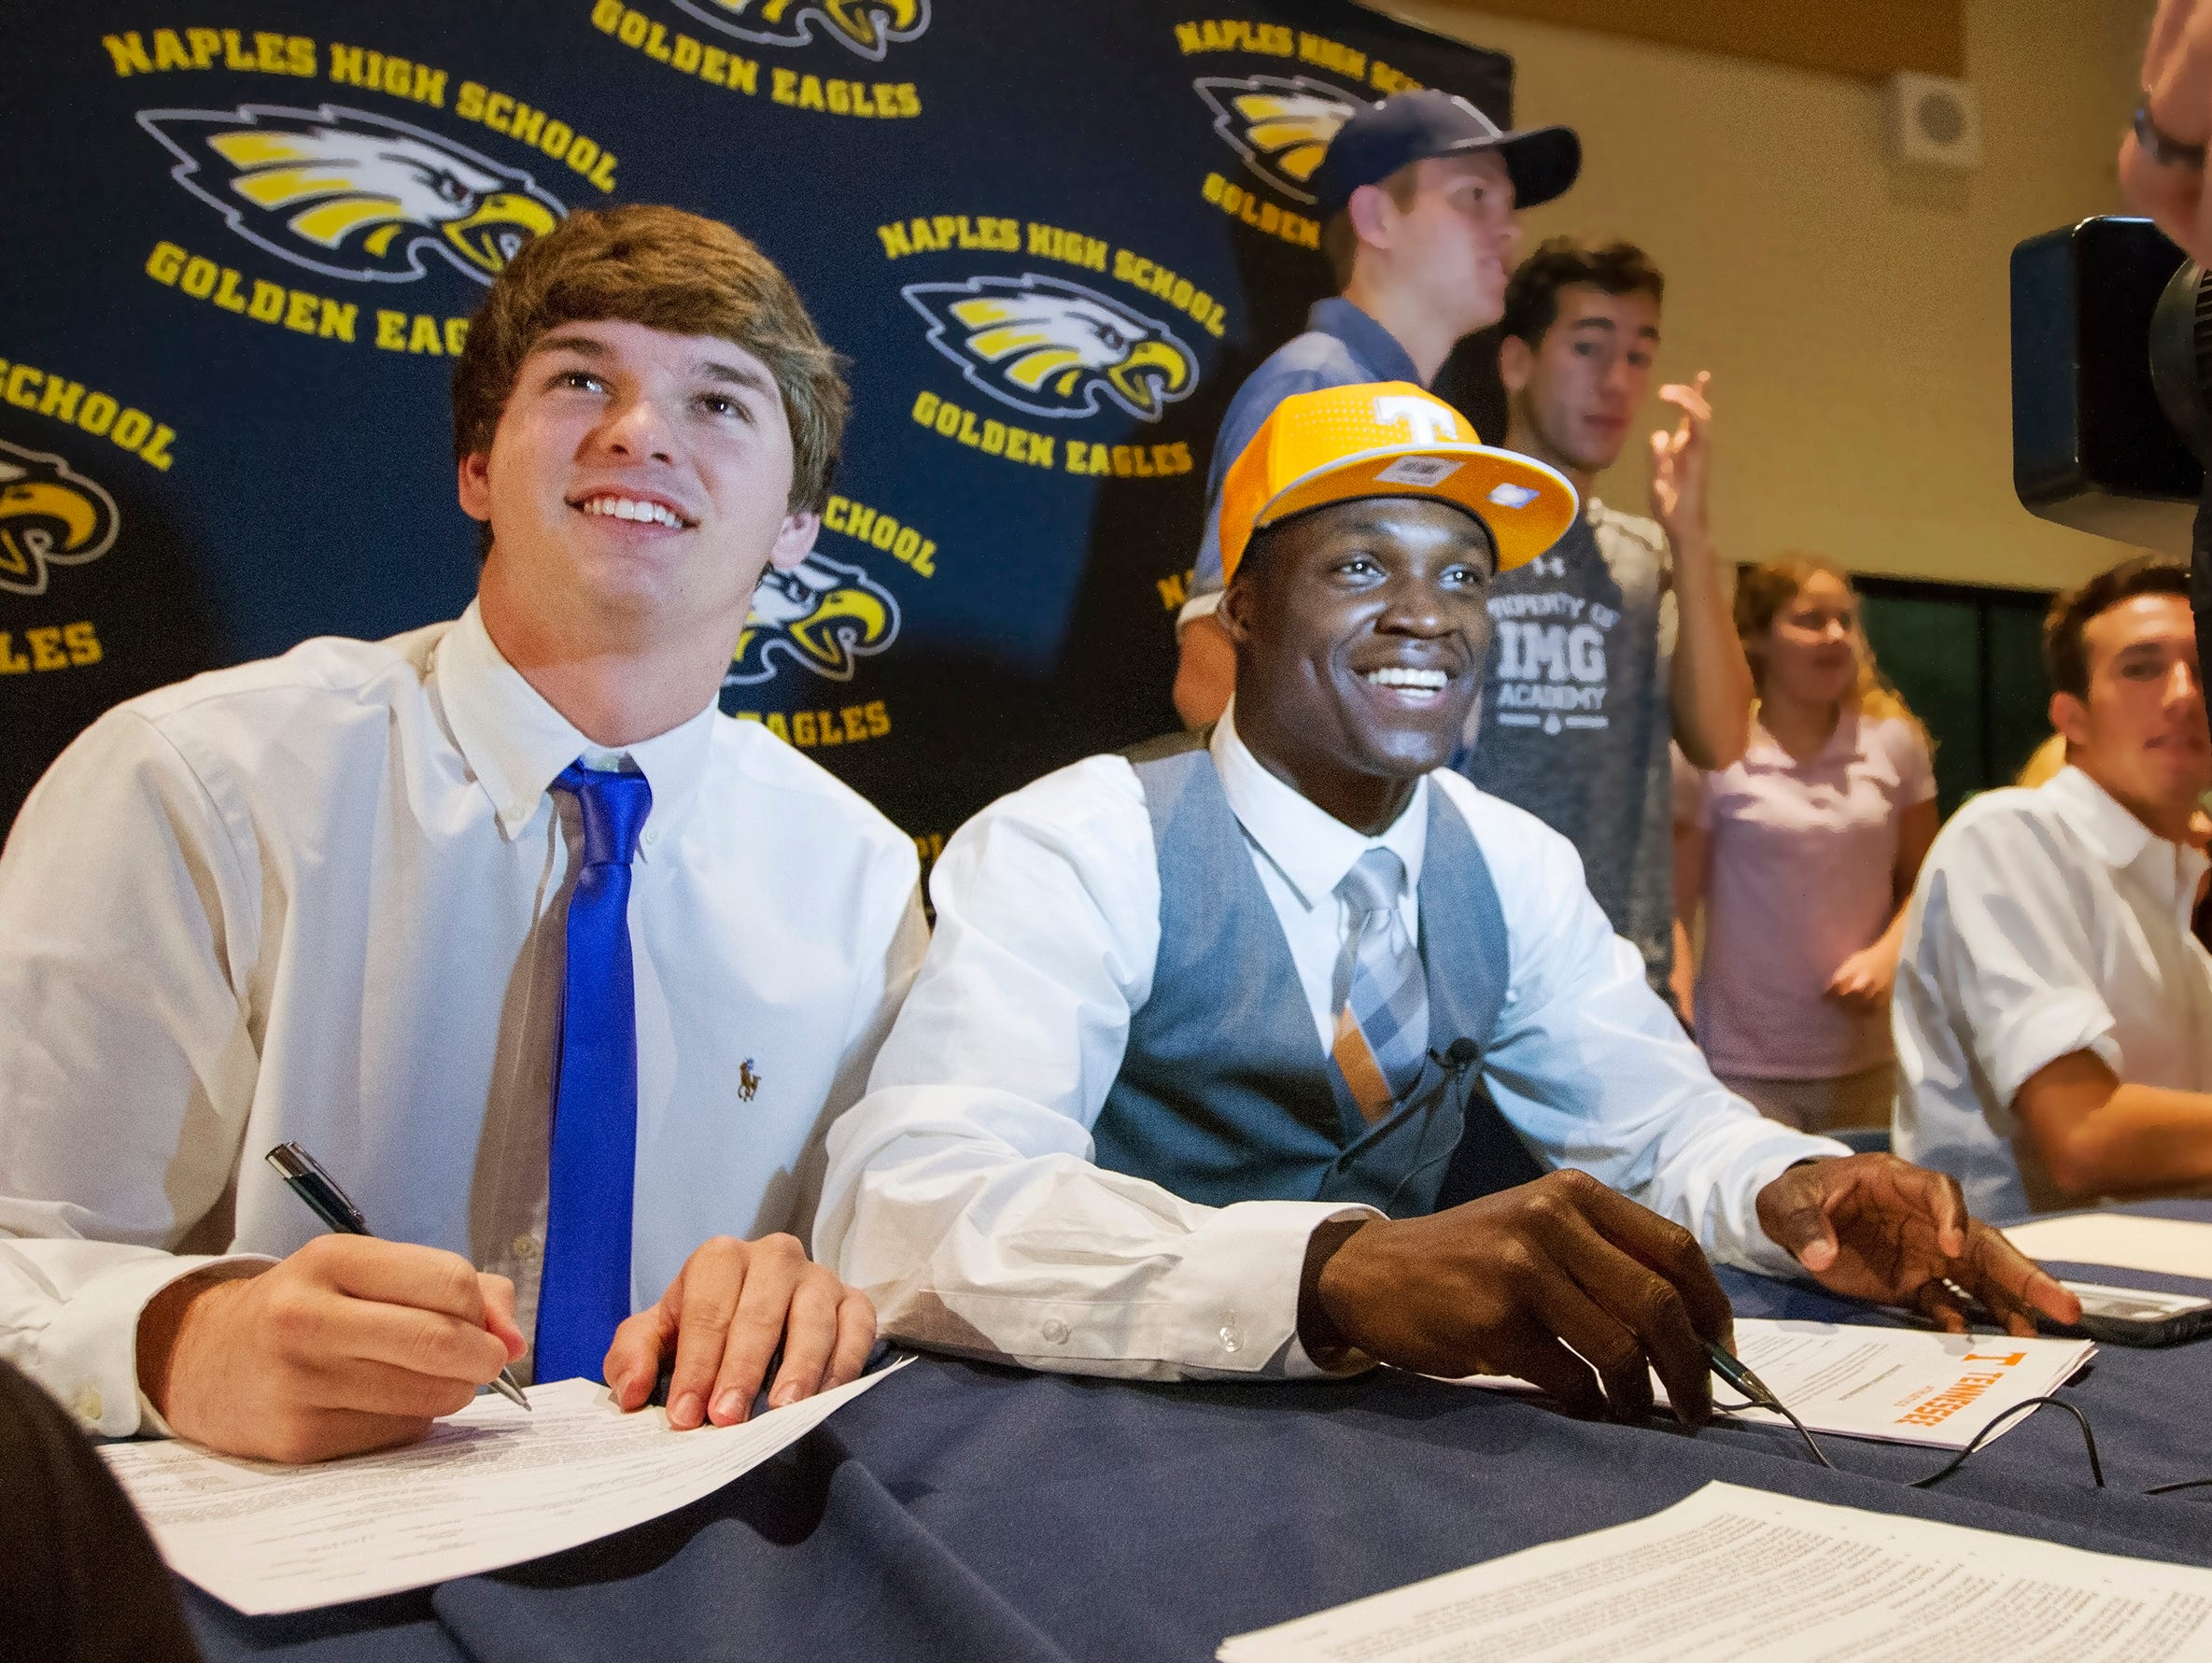 Naples High School football players Chris Riley, left, and Carlin Fils-aime, center, were among the school's athletes who signed National Letters of Intent Wednesday at the school. Riley is going to the College of the Holy Cross and Fils-aime to the University of Tennessee.